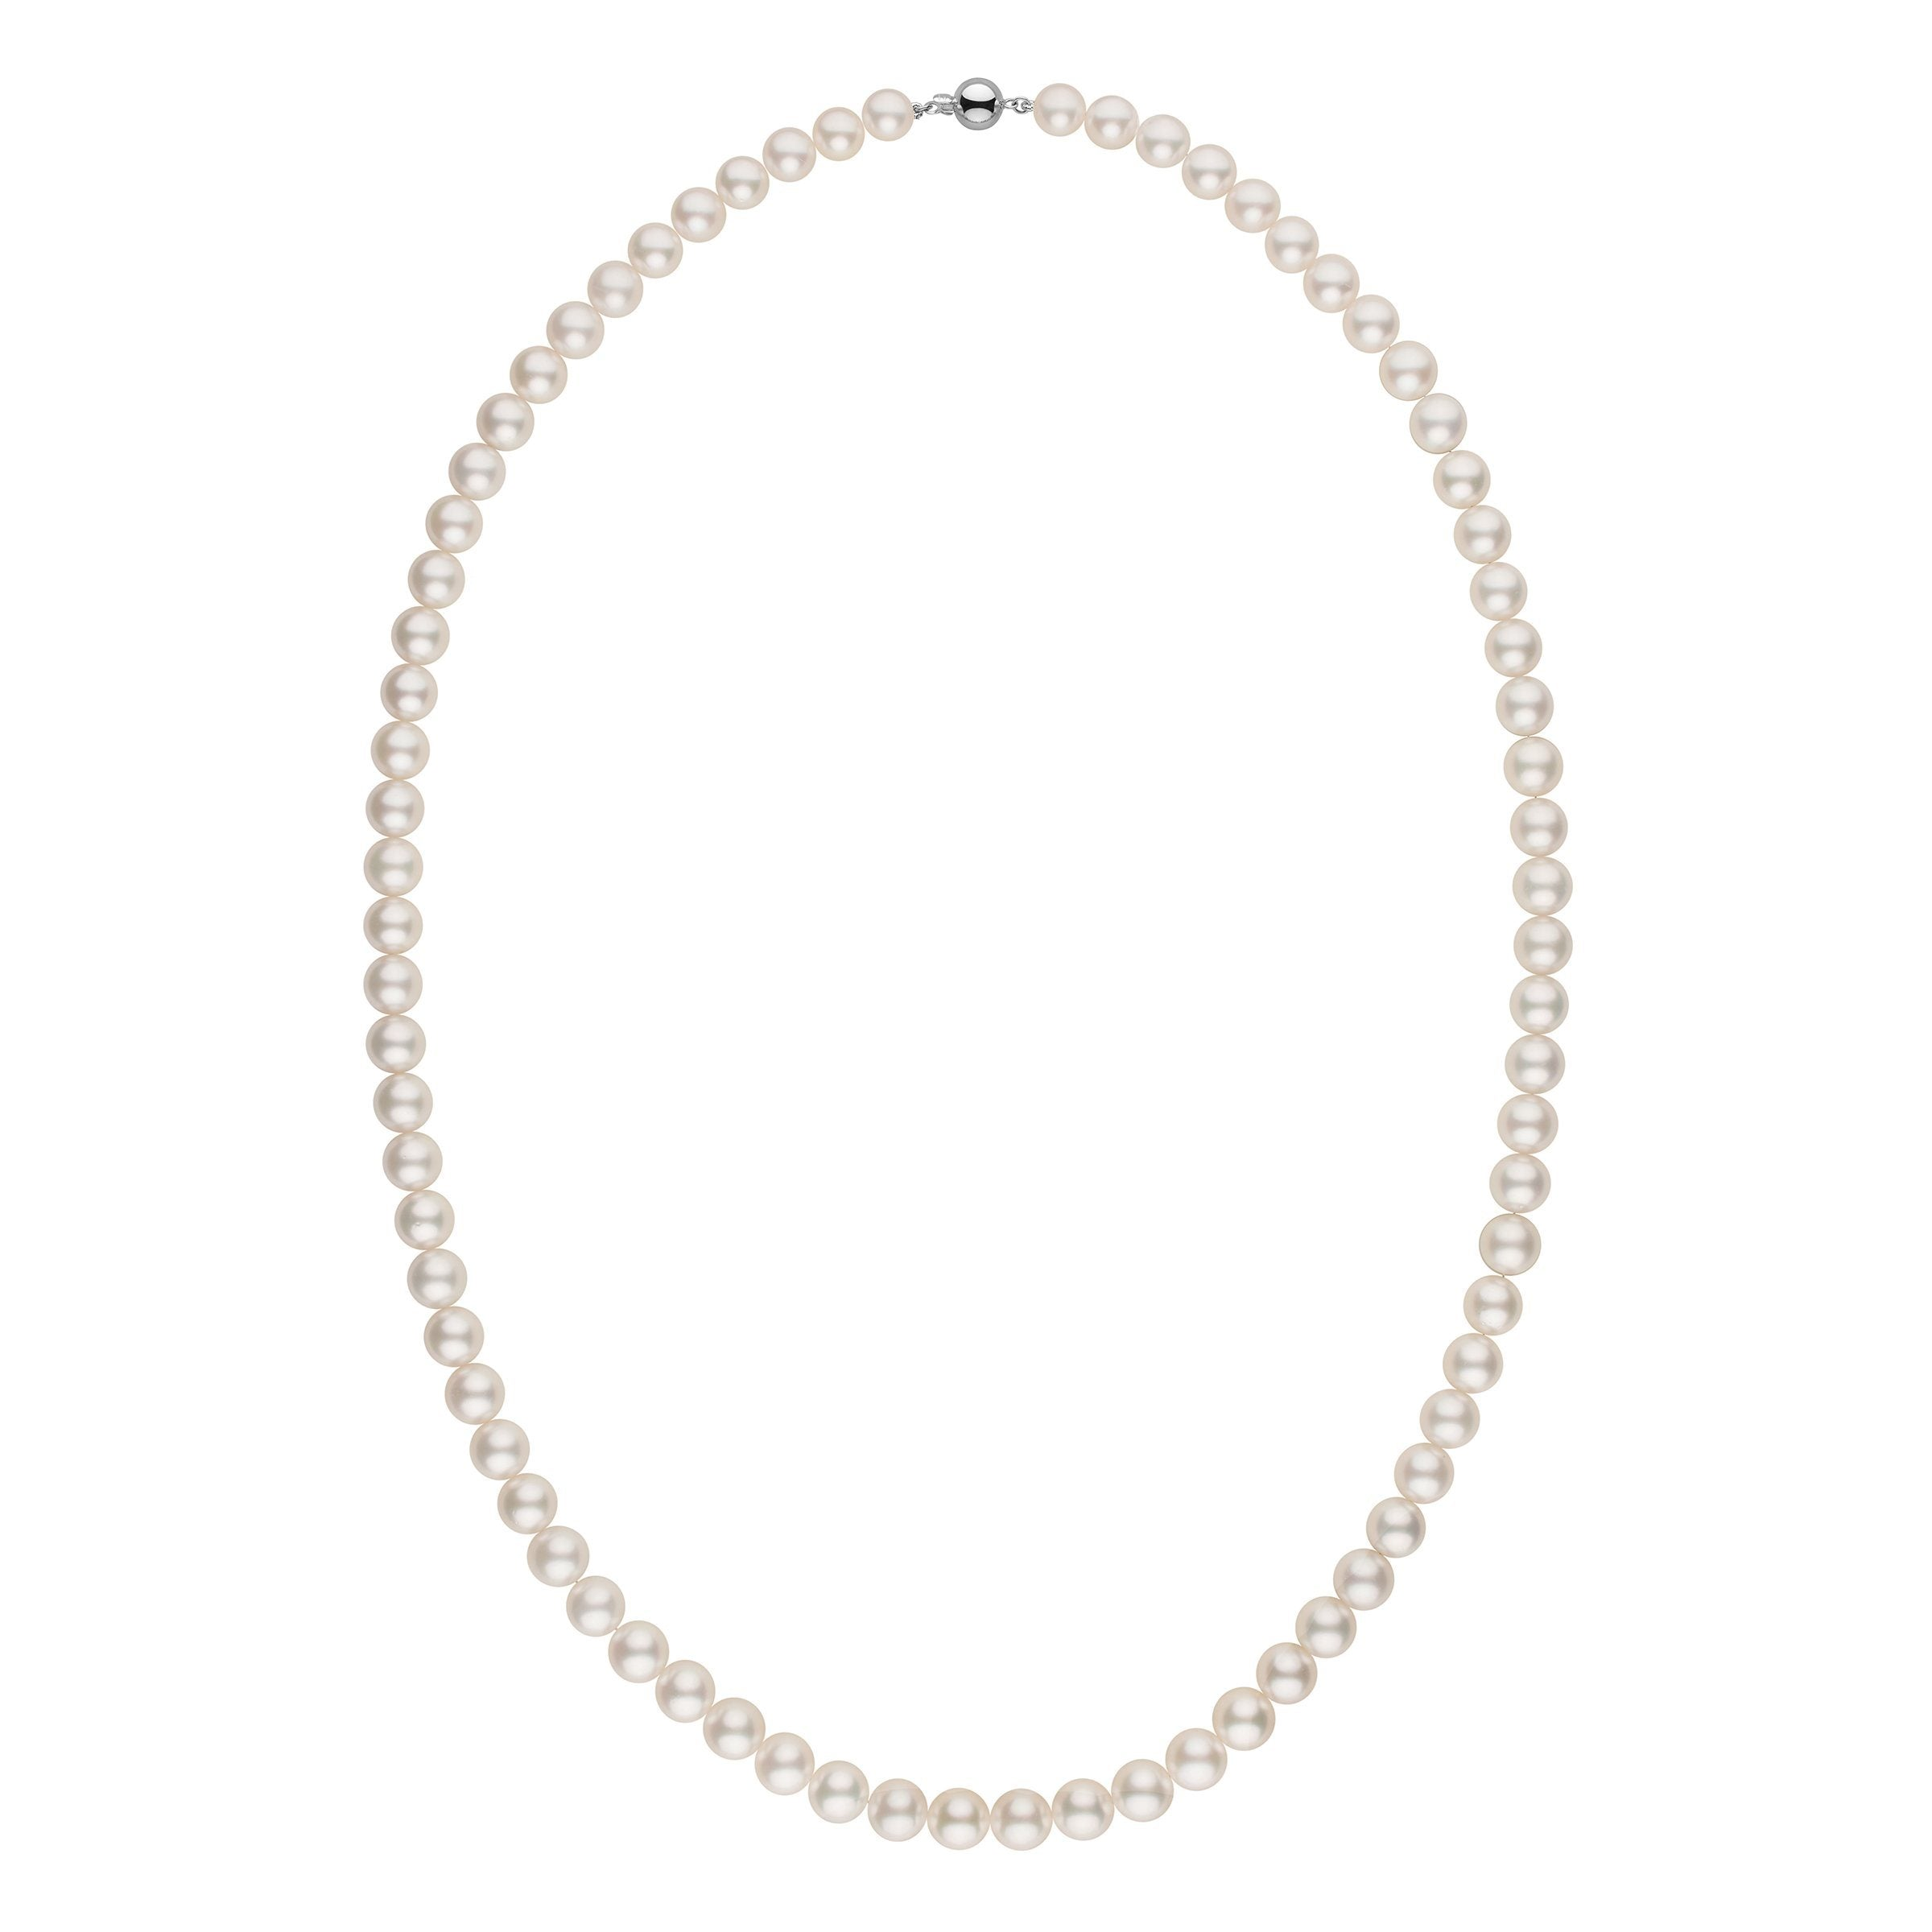 Symphony No. 5 White South Sea Pearl Necklace